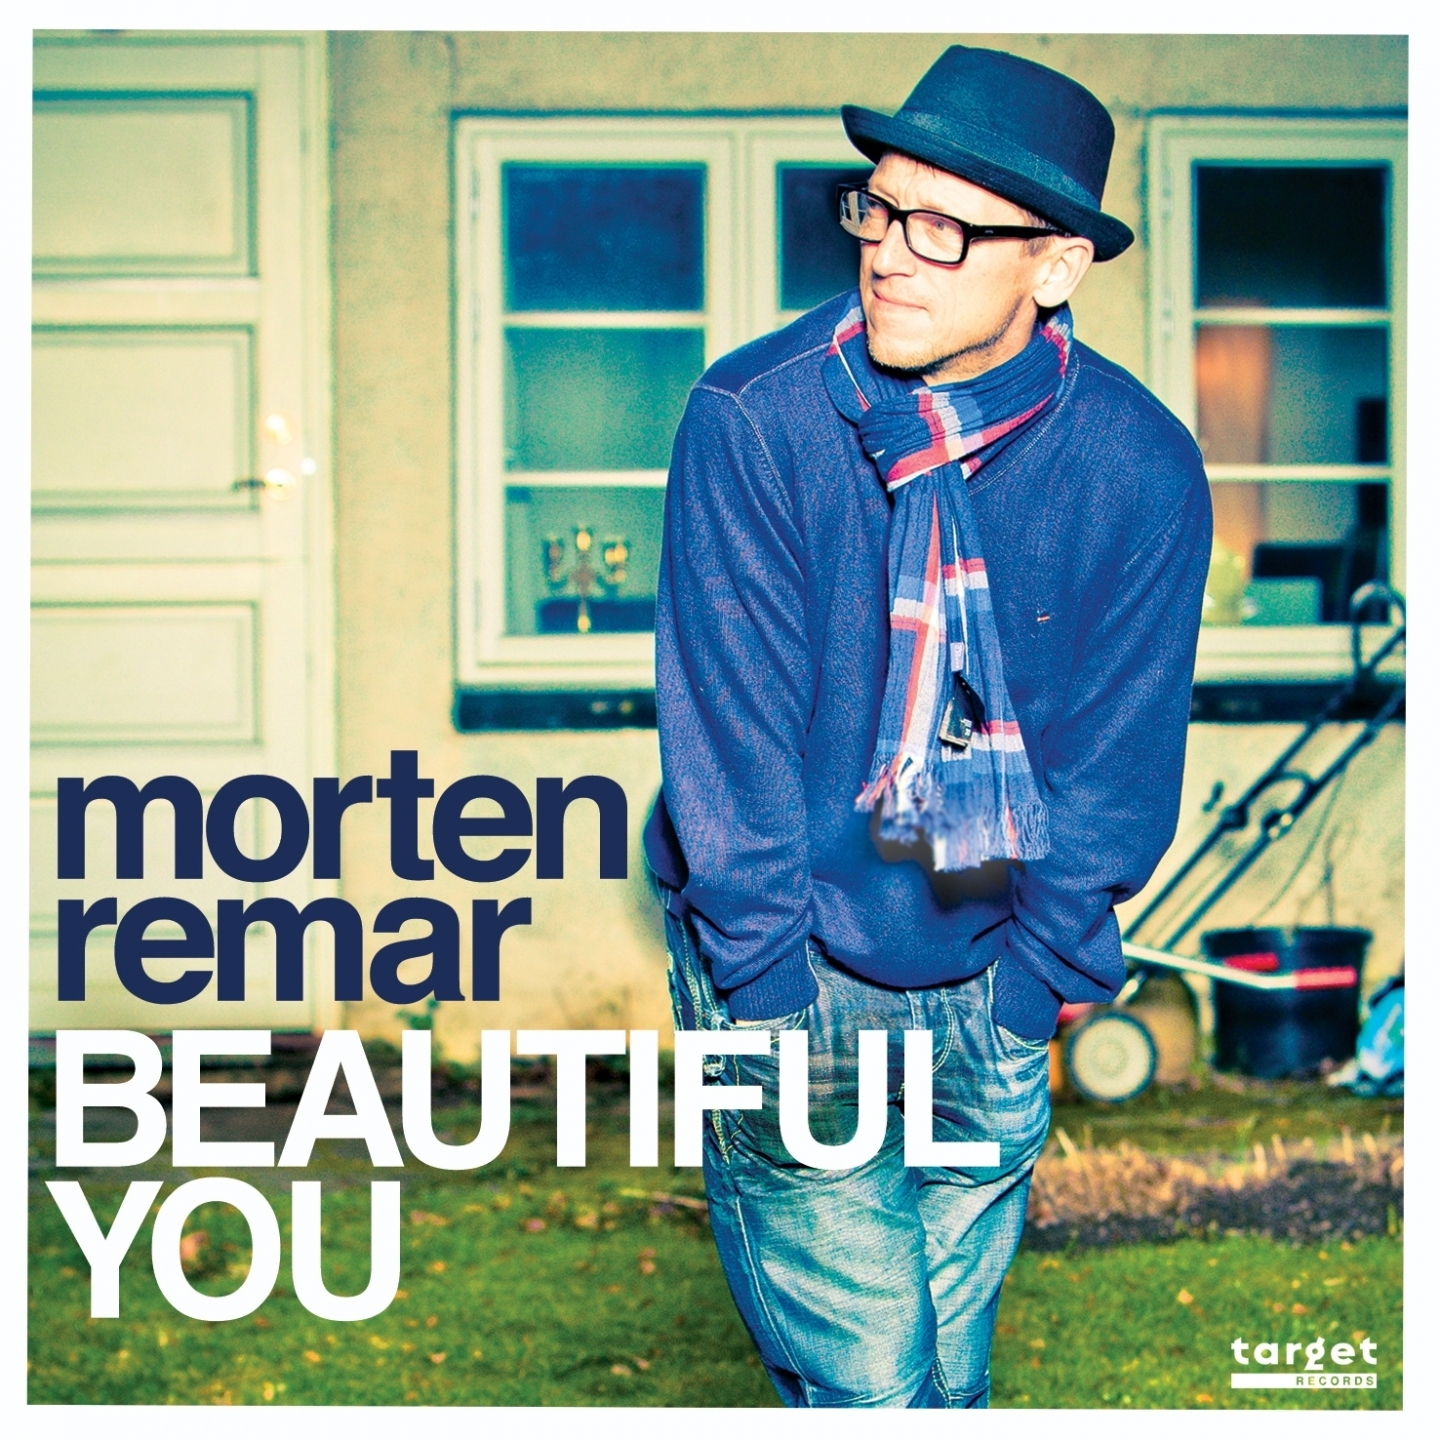 Morten Remar – 'Beautiful You' (Single)